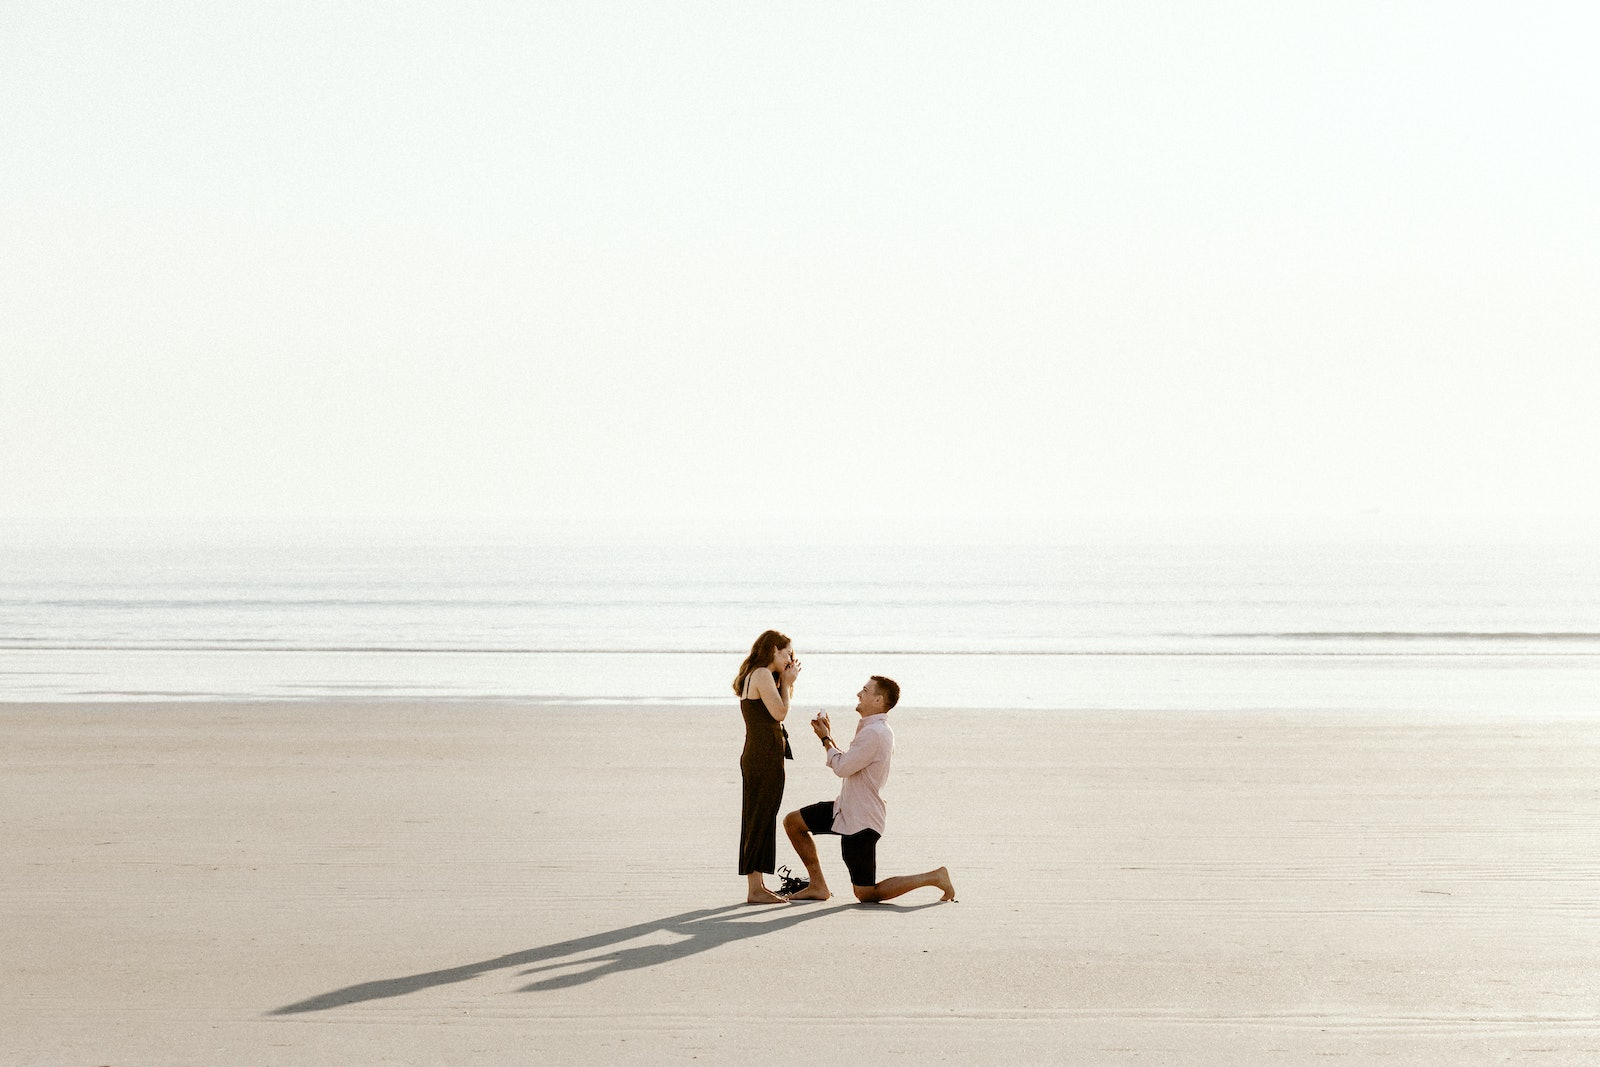 01 - Man on one knee proposing to his partner in the sand in front of the ocean.